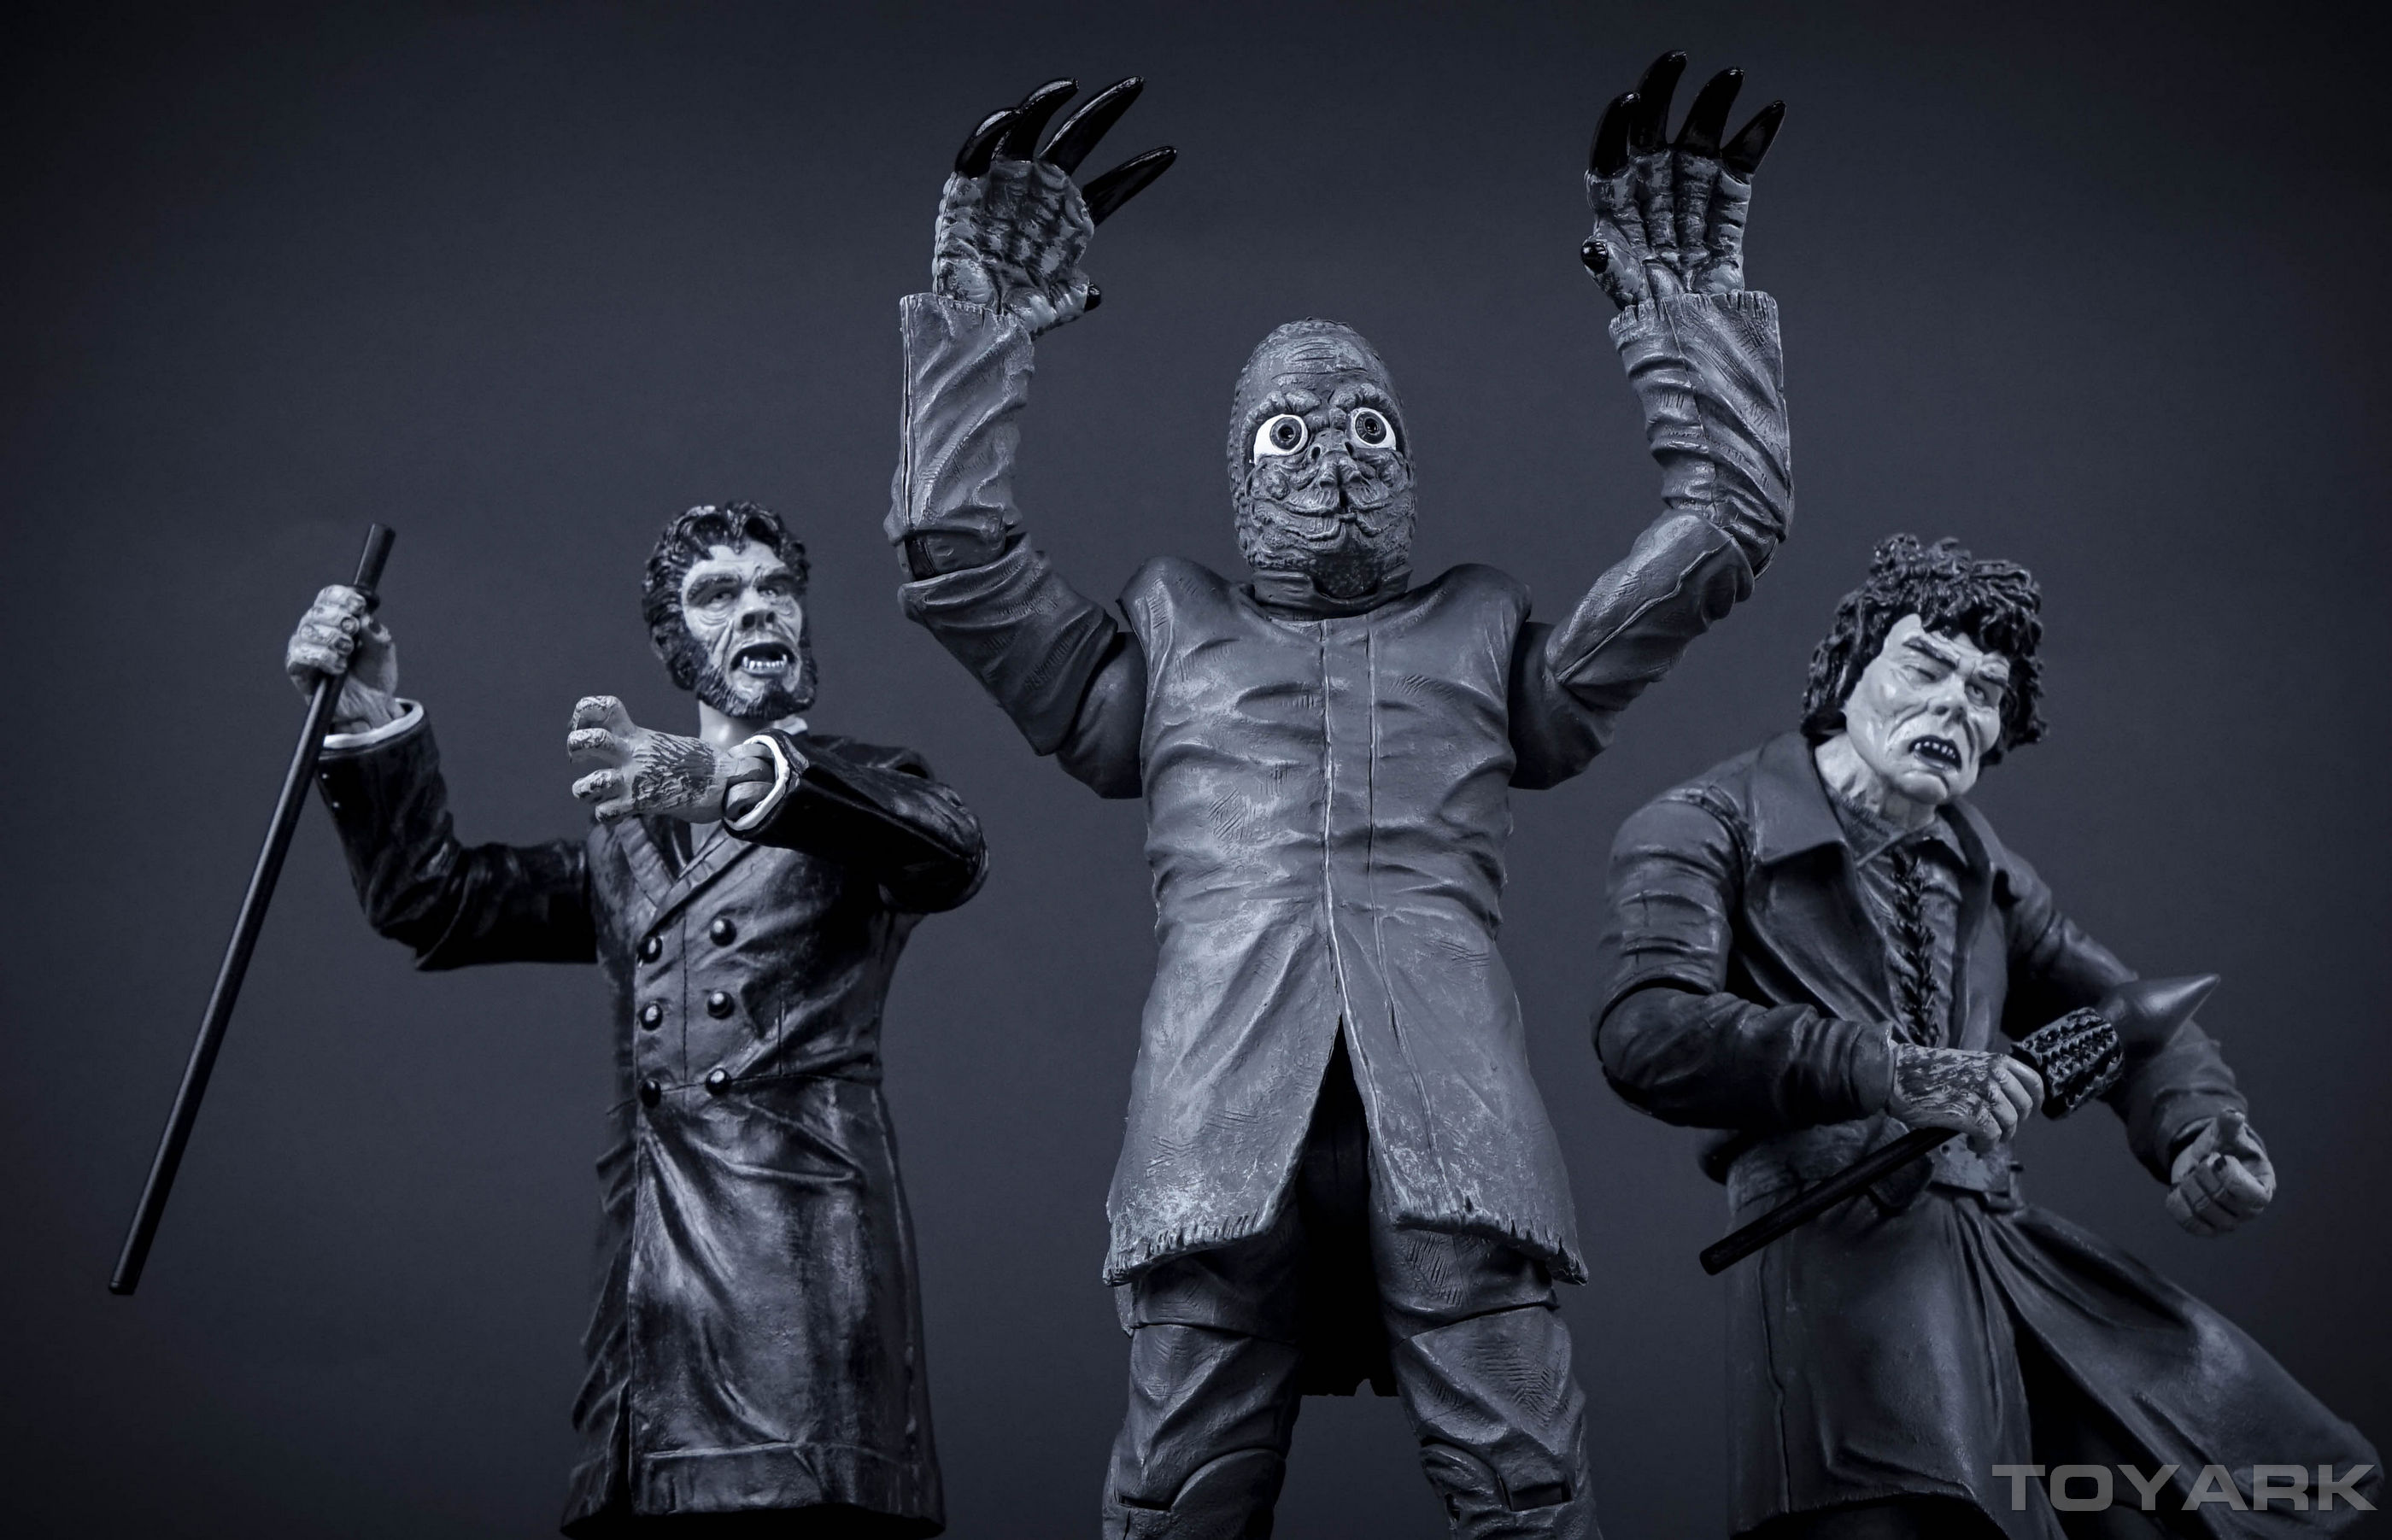 http://news.toyark.com/wp-content/uploads/sites/4/2015/10/Universal-Monsters-Series-4-BW-075.jpg